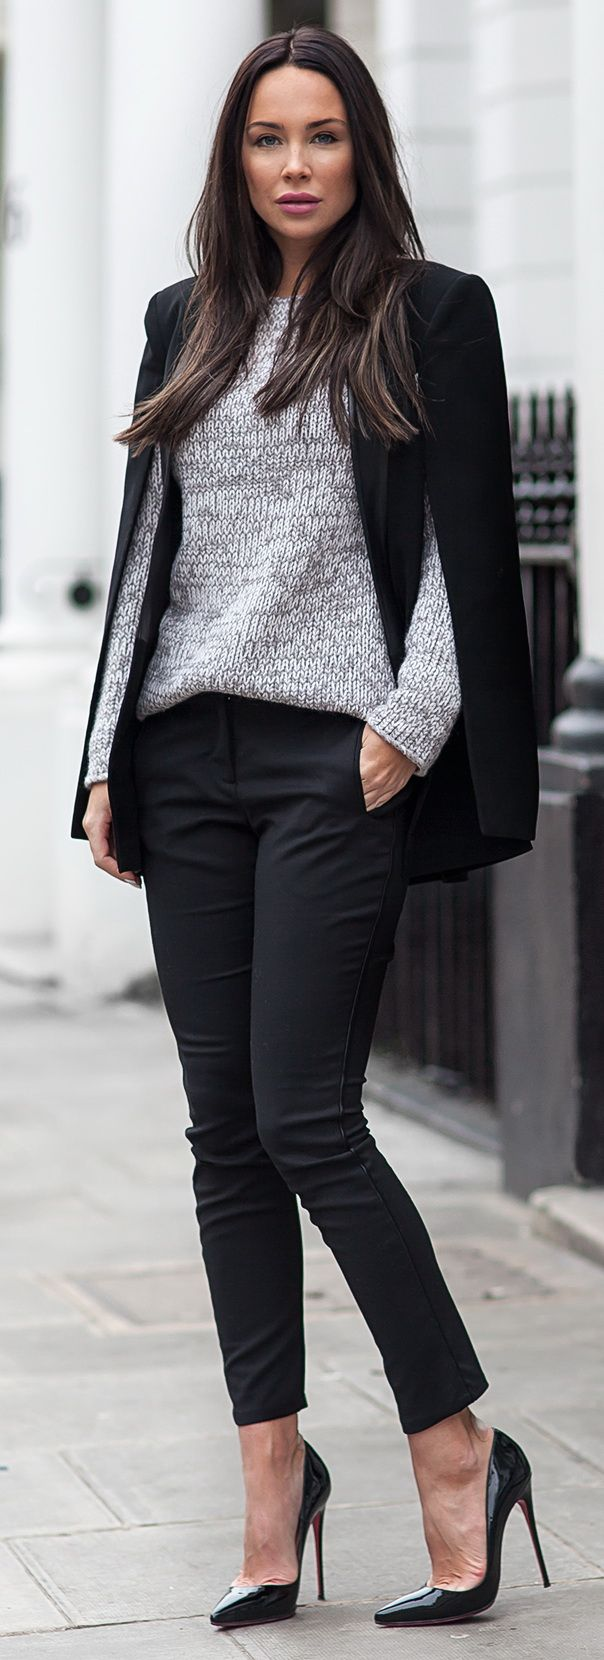 Fashion Trends Daily - 30 Trendy Winter Outfits On The Street 2016